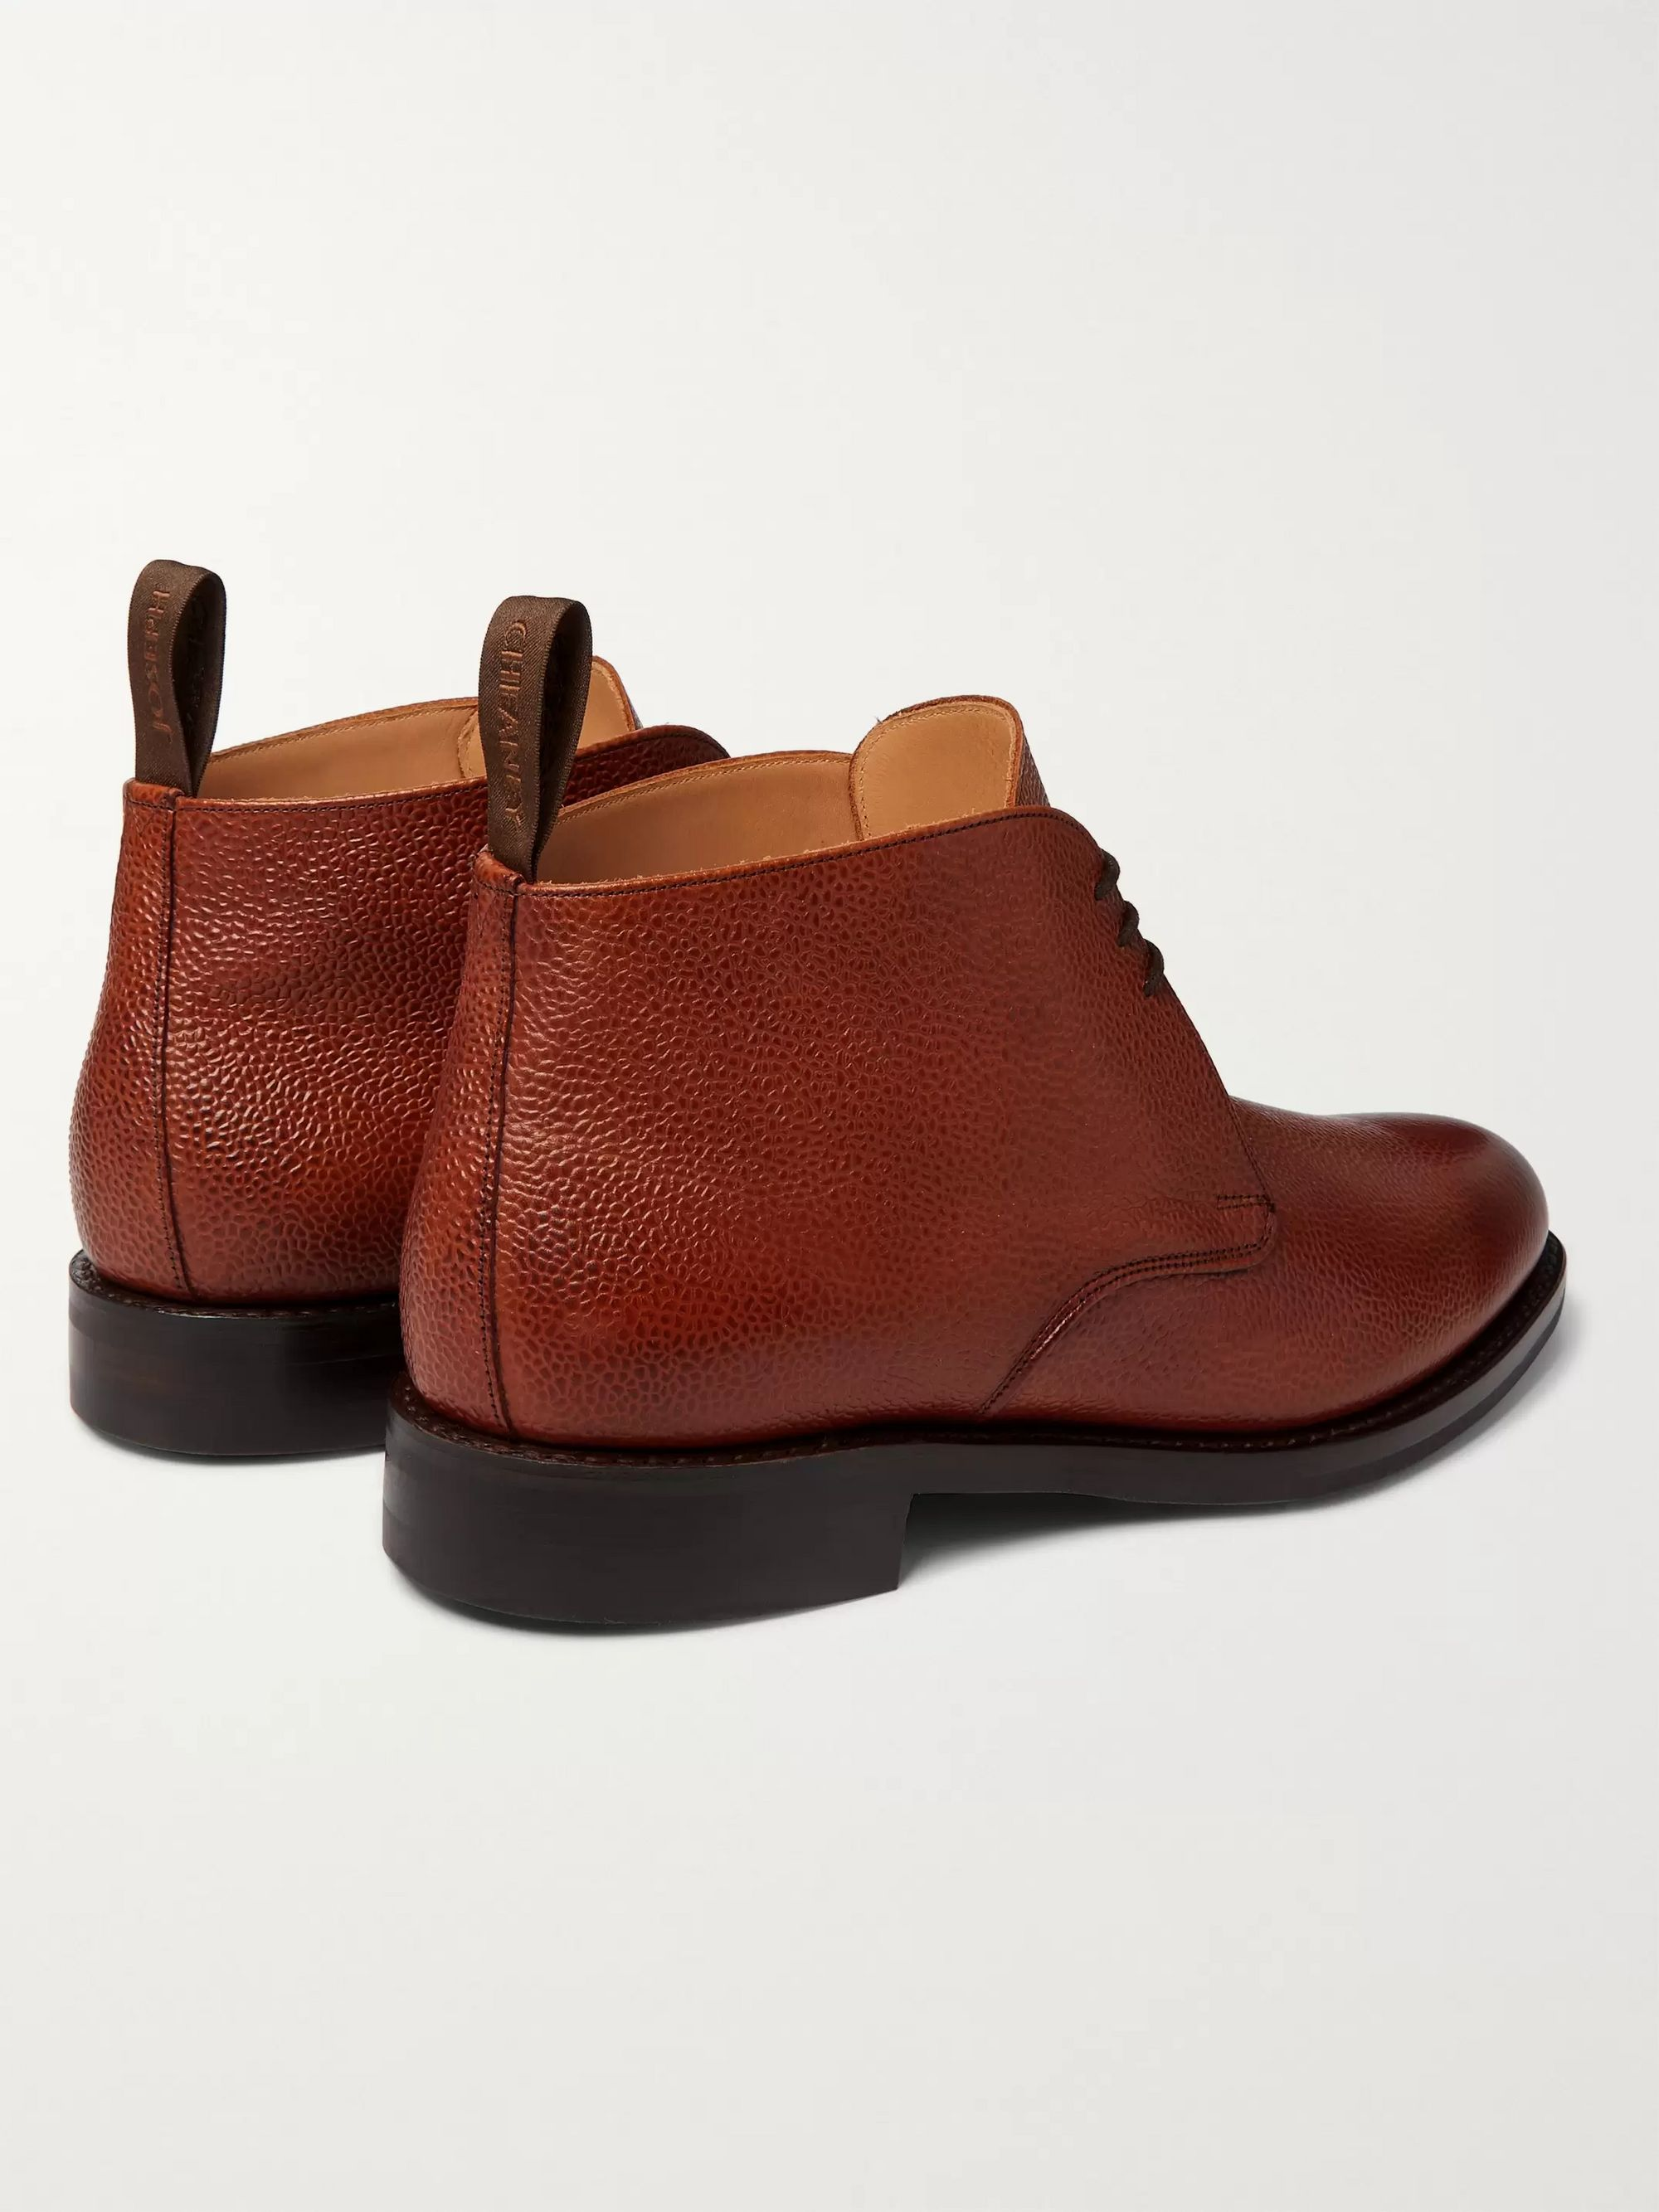 Cheaney Jackie Full-Grain Leather Boots